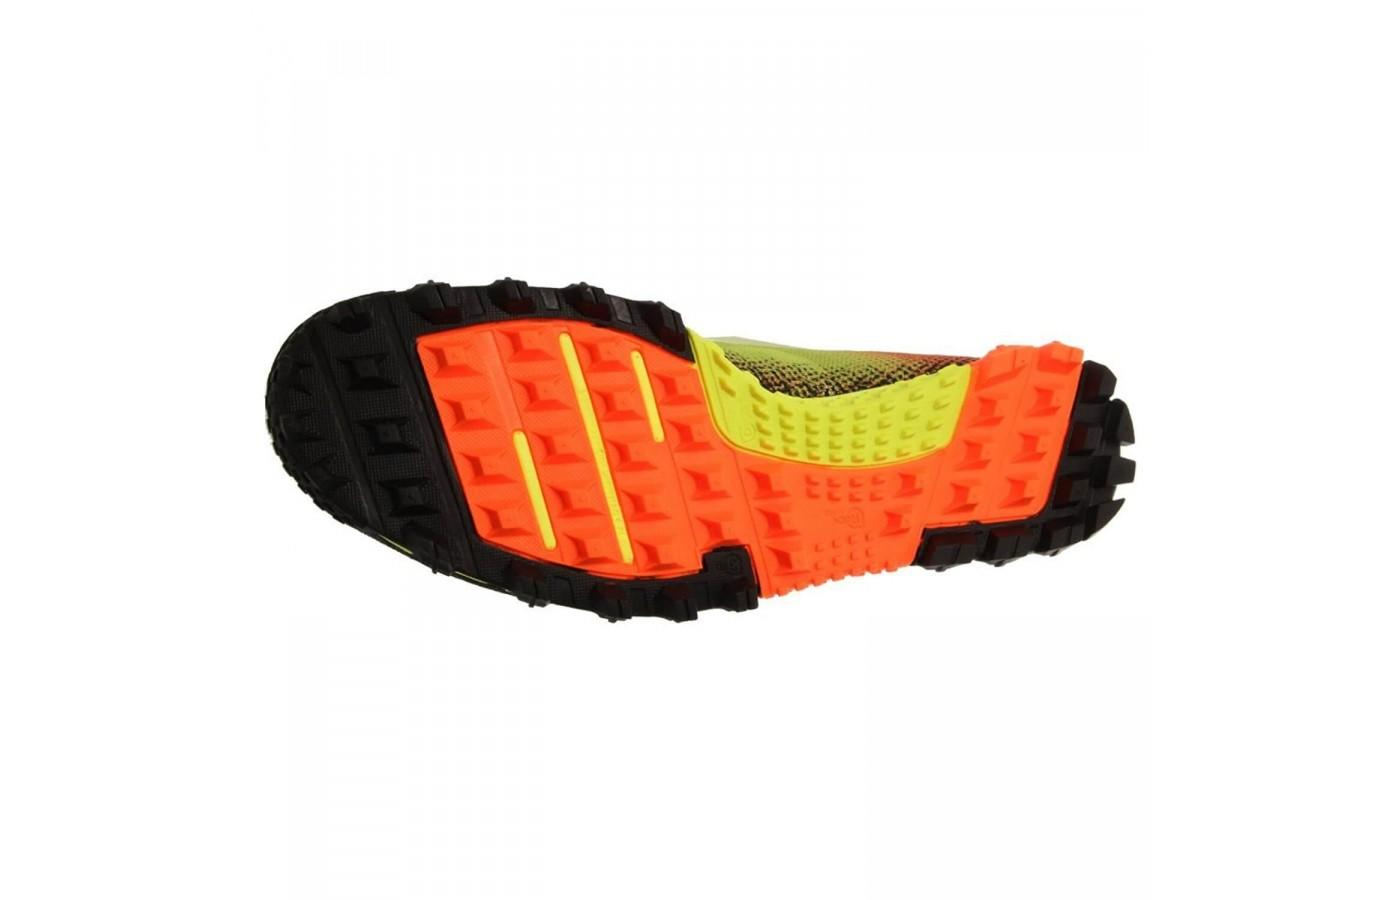 d7f7c01bddd438 The square lugs and midfoot rock guard are two key features of the Reebok  All Terrain